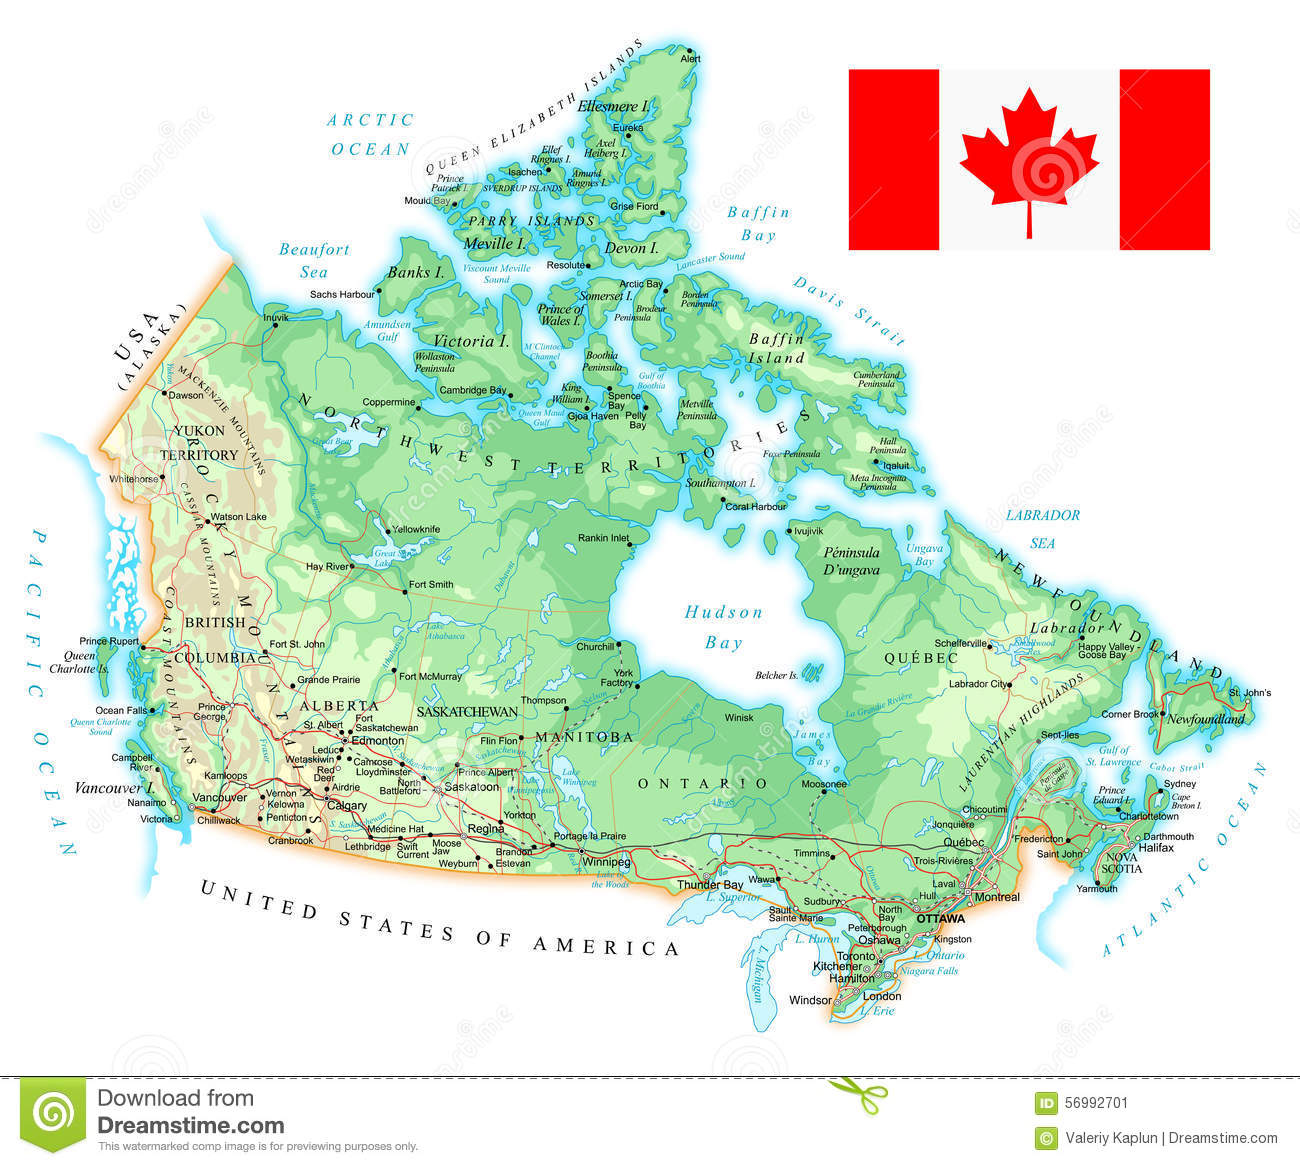 france major cities map with Stock Illustration Canada Detailed Topographic Map Illustration Contains Contours Country Land Names Cities Water Objects Flag Roads Railways Image56992701 on Rhone alpes as well Regionen also Brazil Population Density By City likewise Saxony Anhalt Location On The Germany Map likewise European Experience Tour.